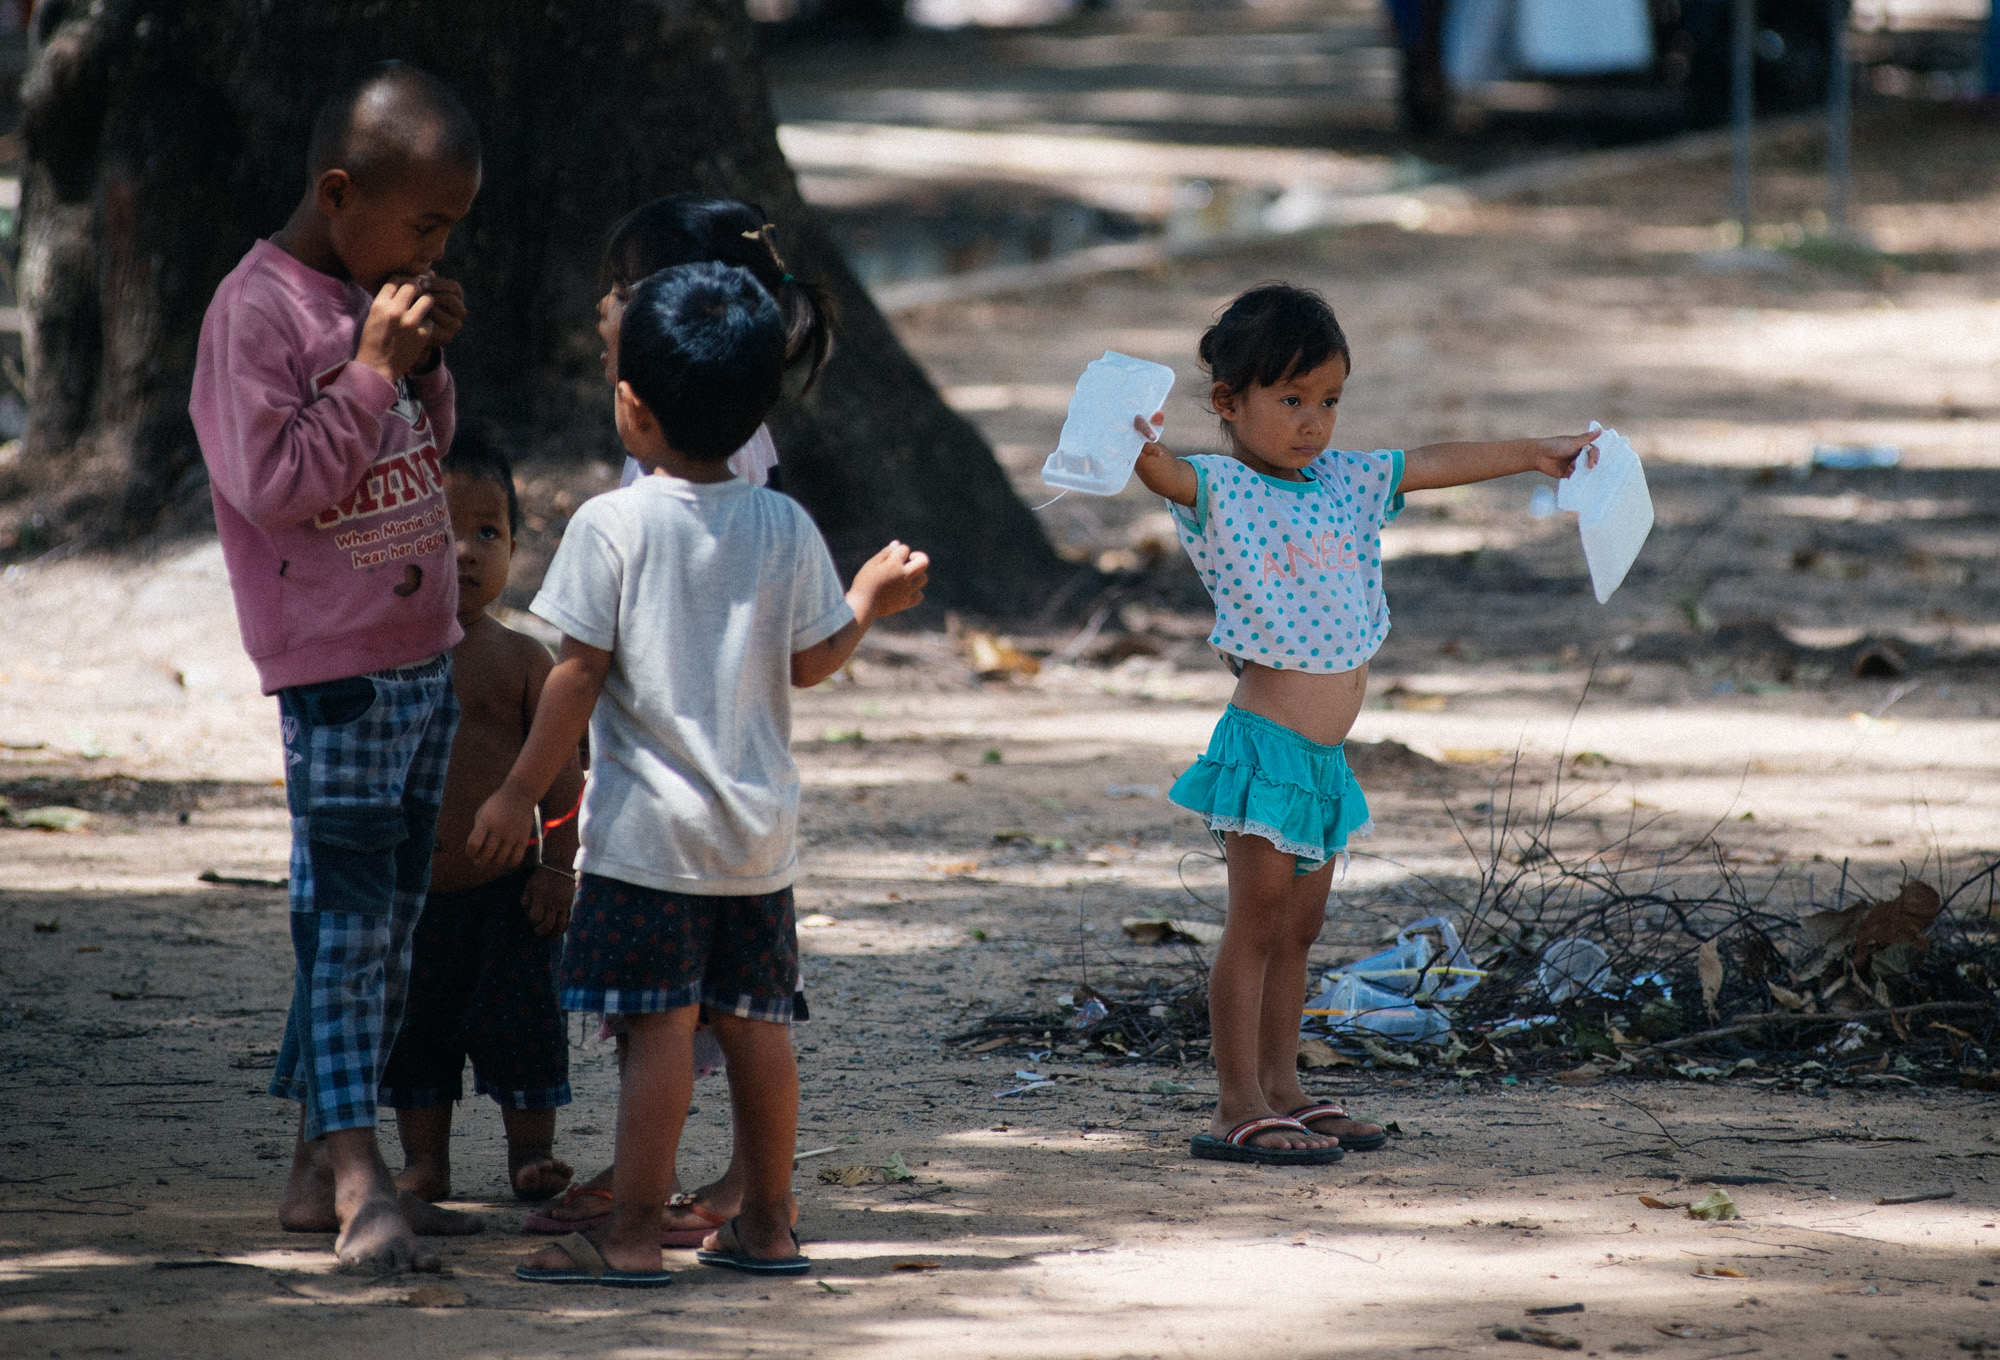 At a park in front of the Royal Family's Siem Reap house, a group of kids plays under trees full of fruit bats.